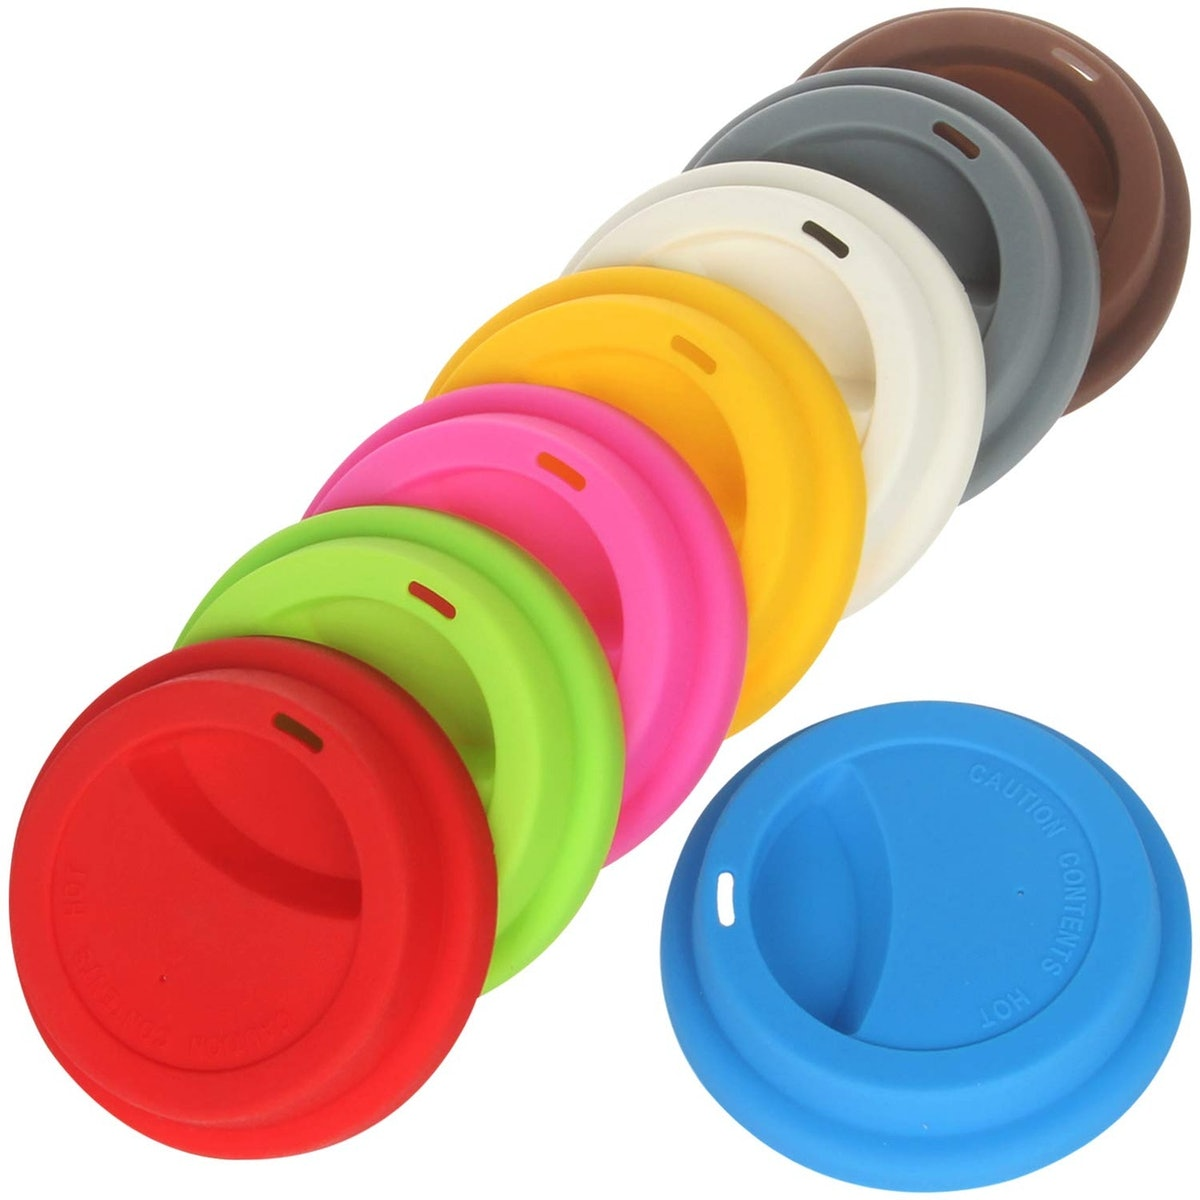 Yilove Silicone Coffee Cup Lids (8-Pack)